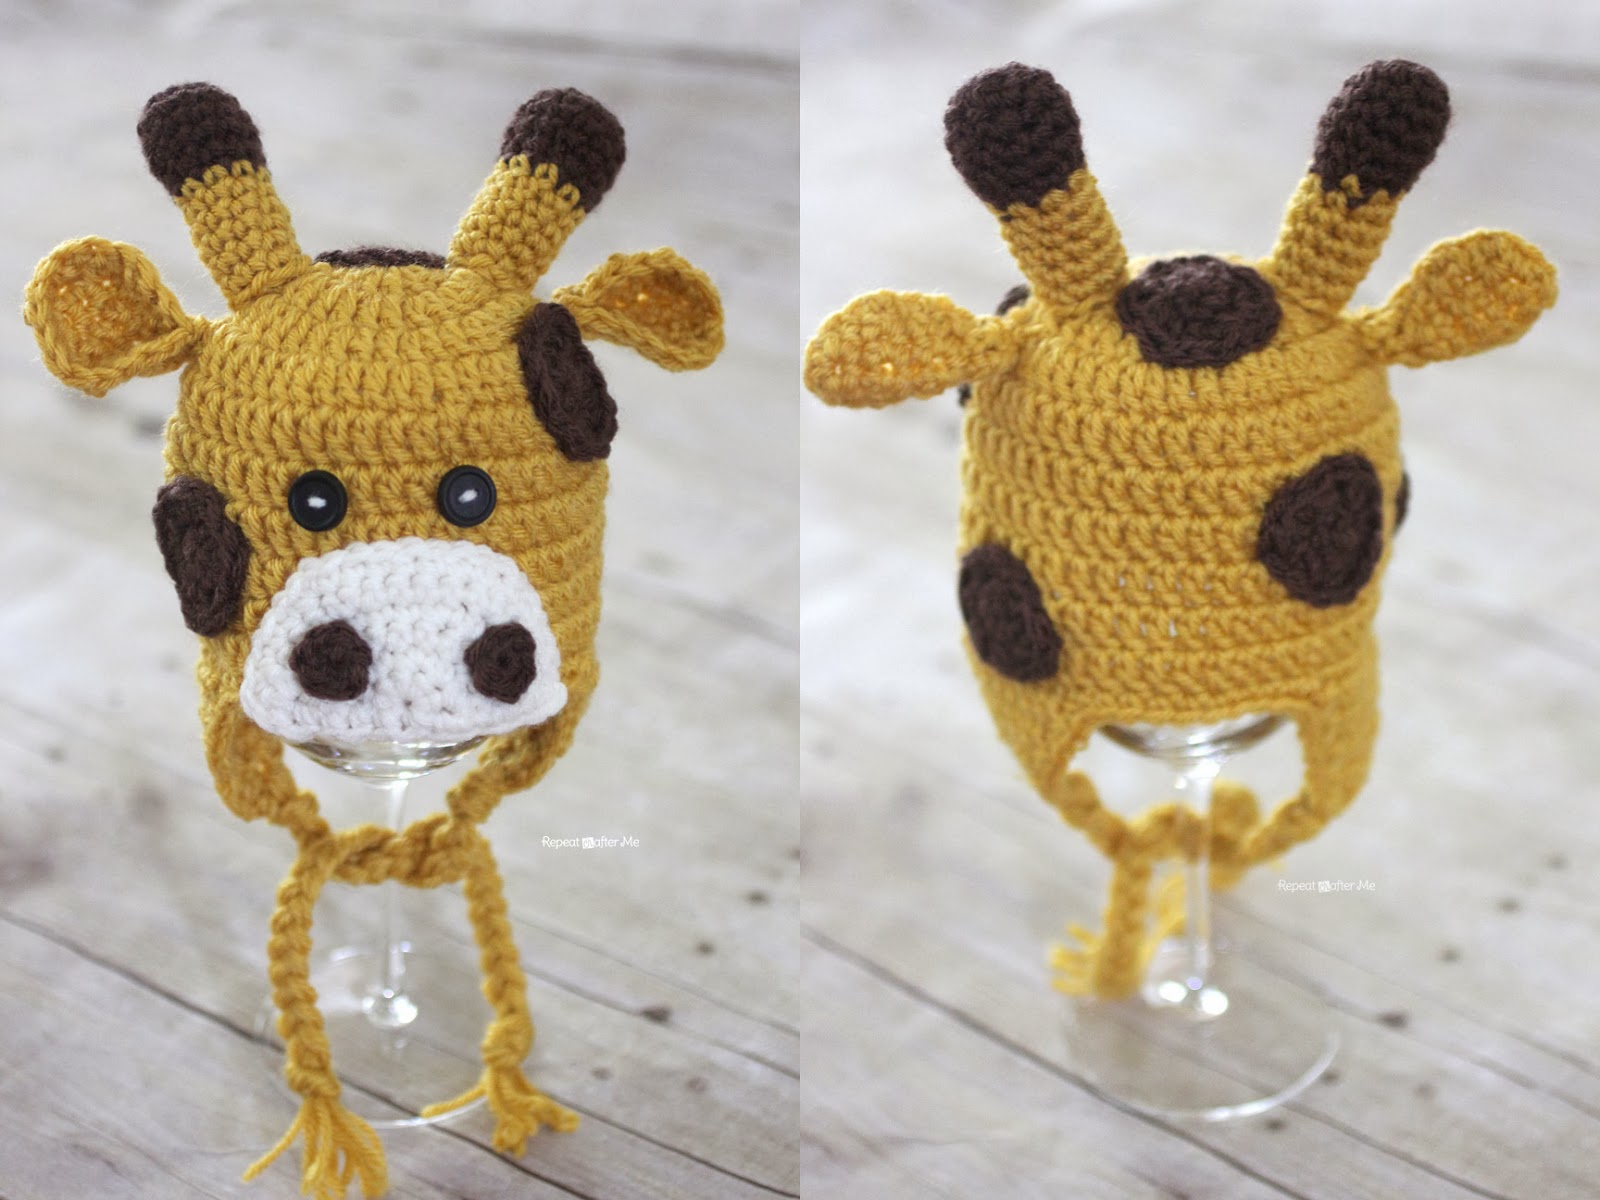 Crochet Hat Pattern Baby Giraffe Beanie Hat : Crochet Giraffe Hat Pattern - Repeat Crafter Me